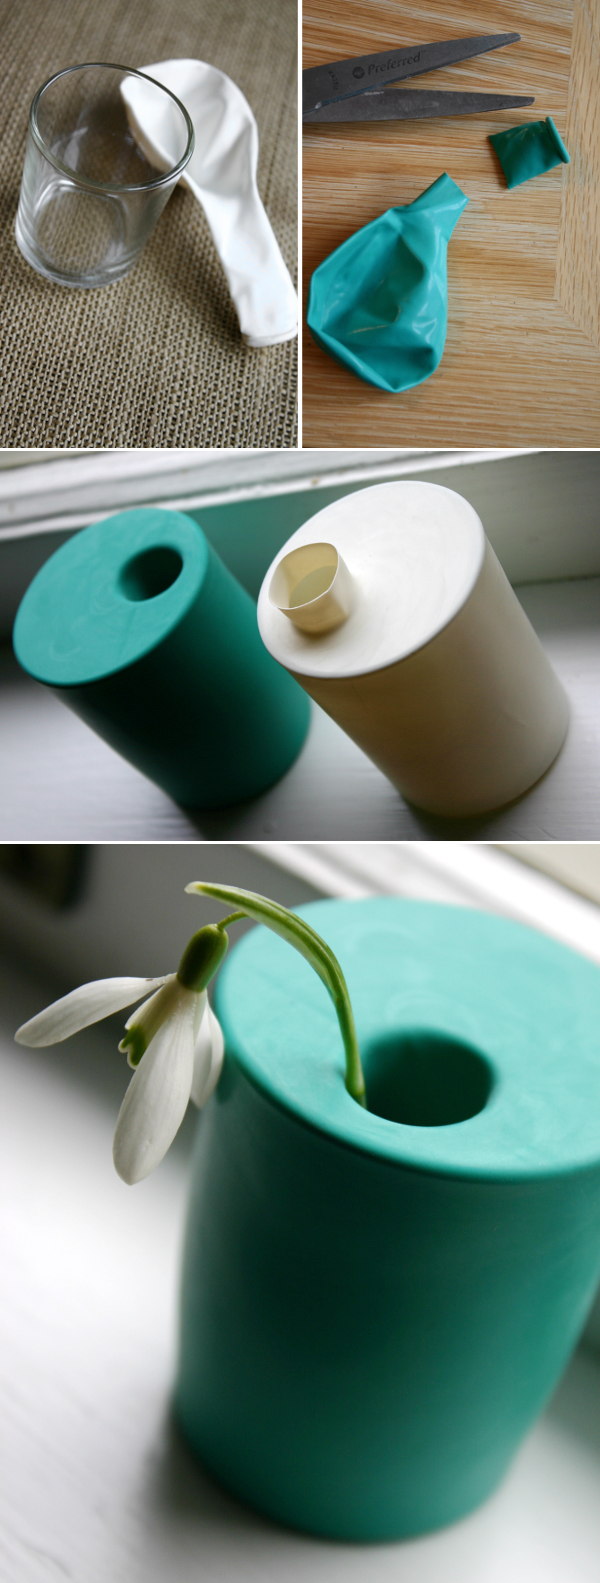 Super simple vase idea. #DIY